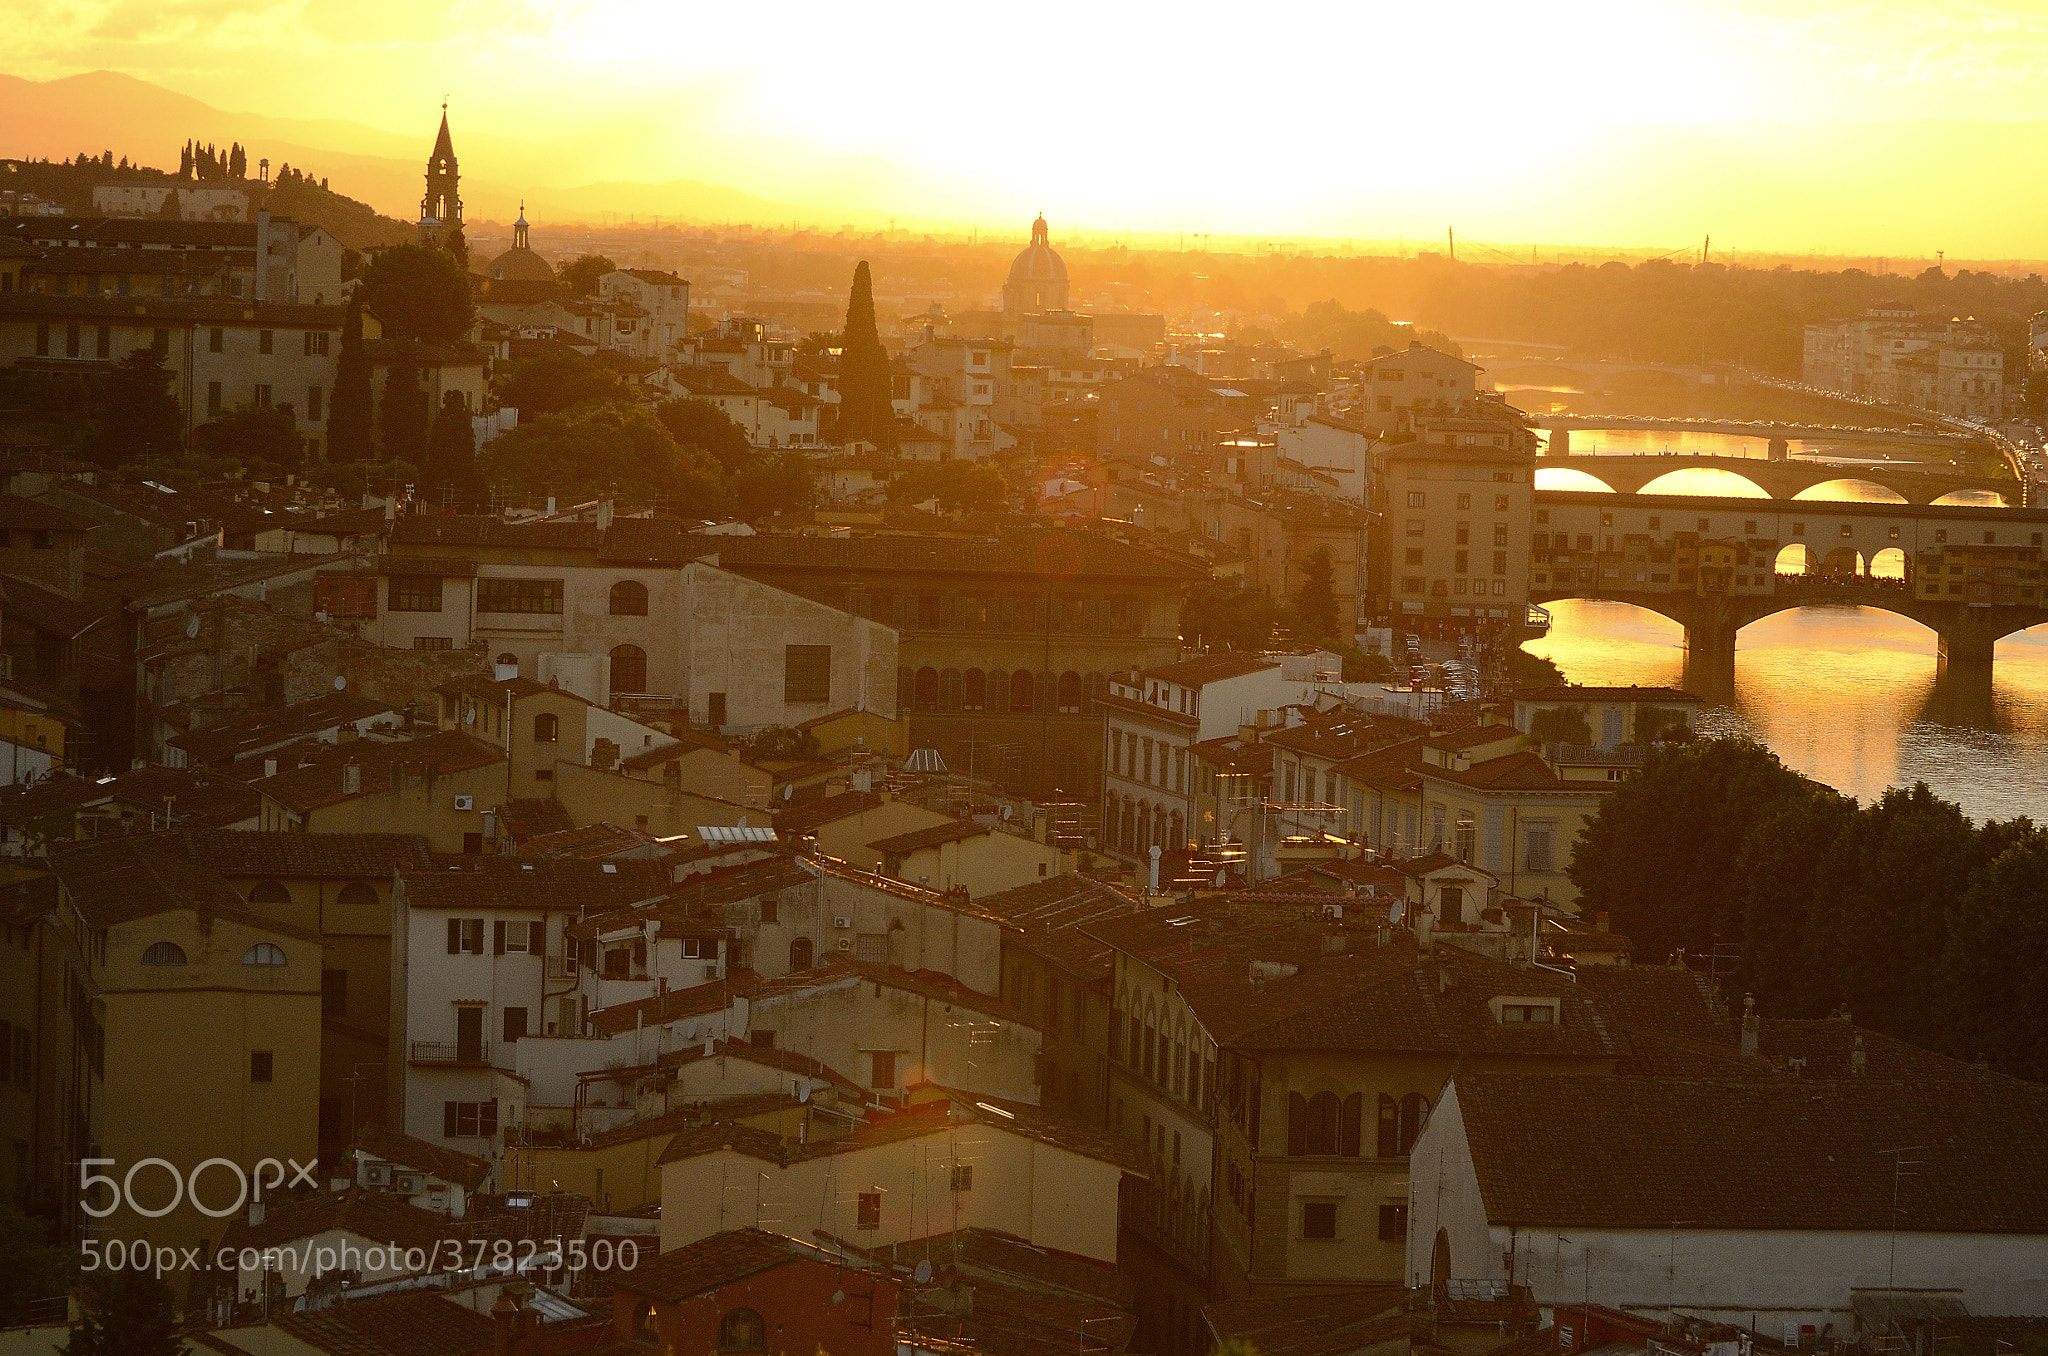 Photograph sunset view of Florence by derevnja on 500px